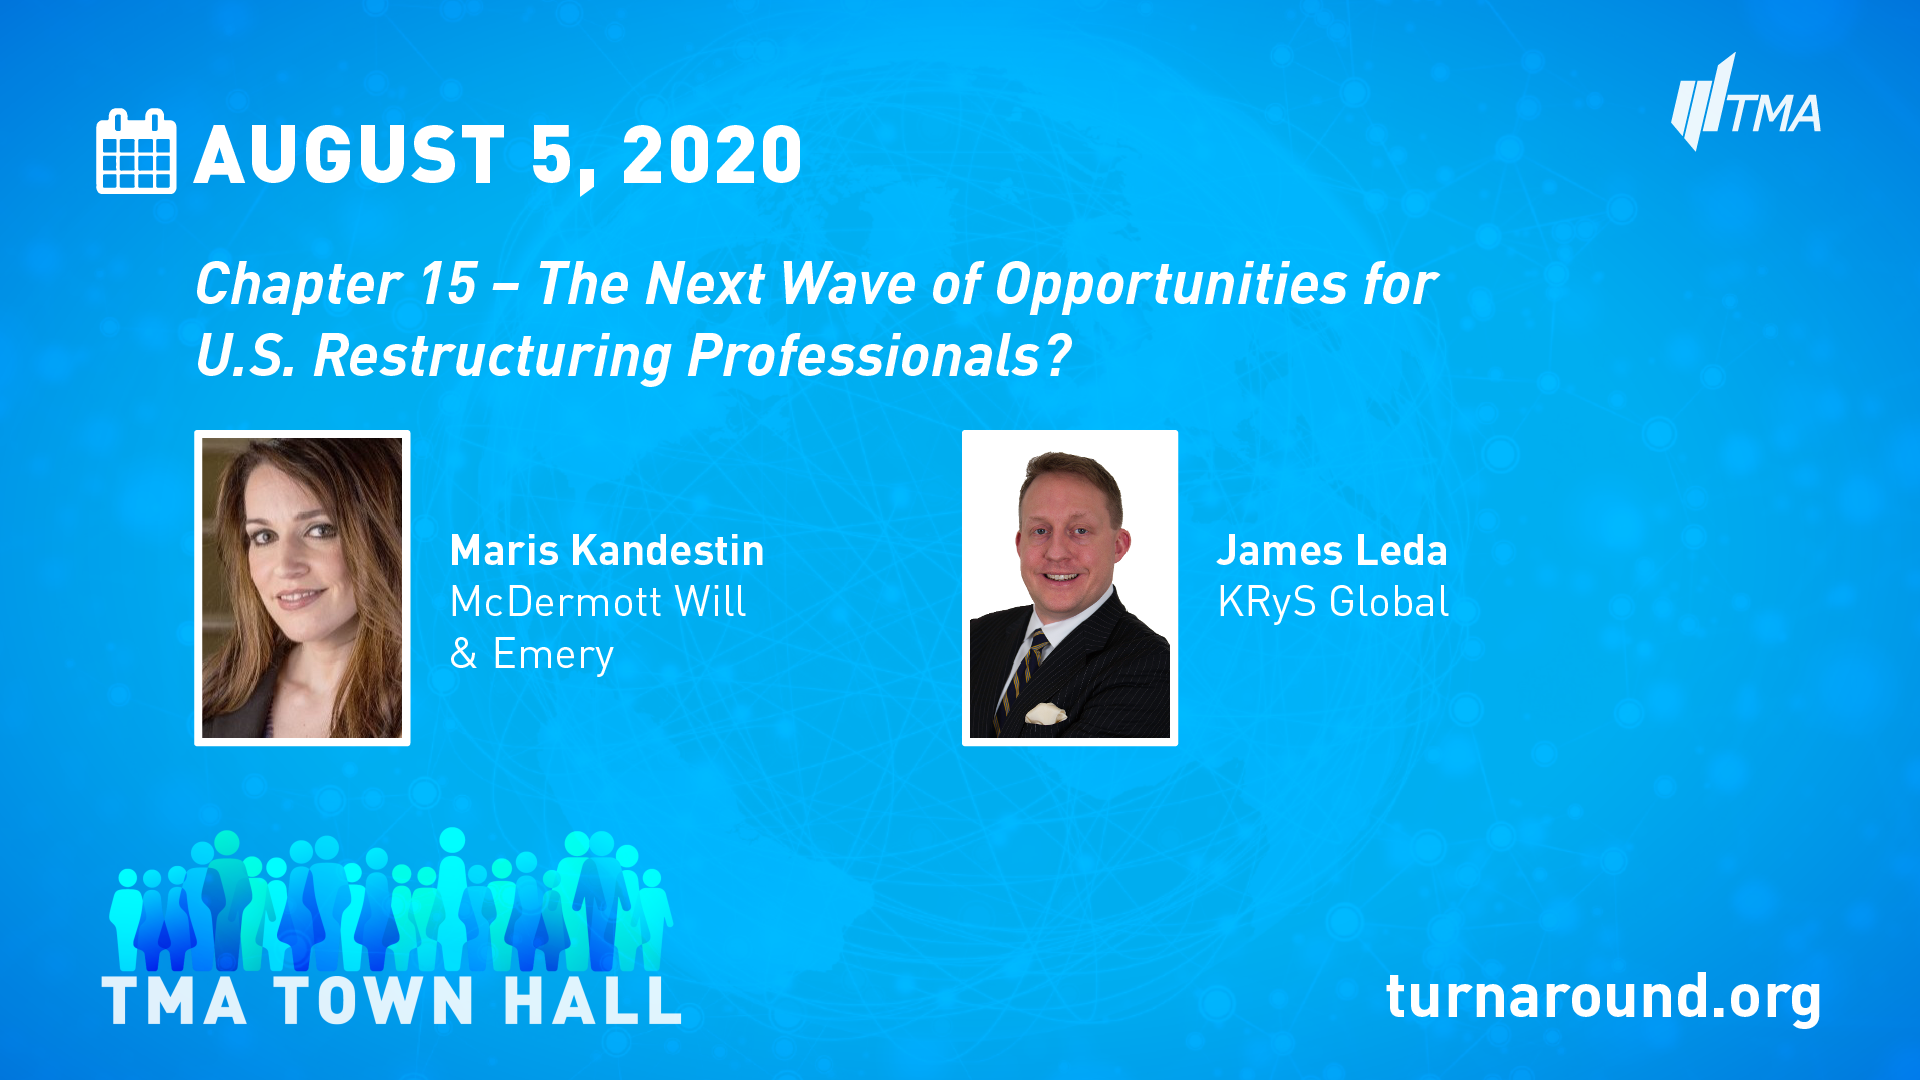 TMA Town Hall for August 5, 2020